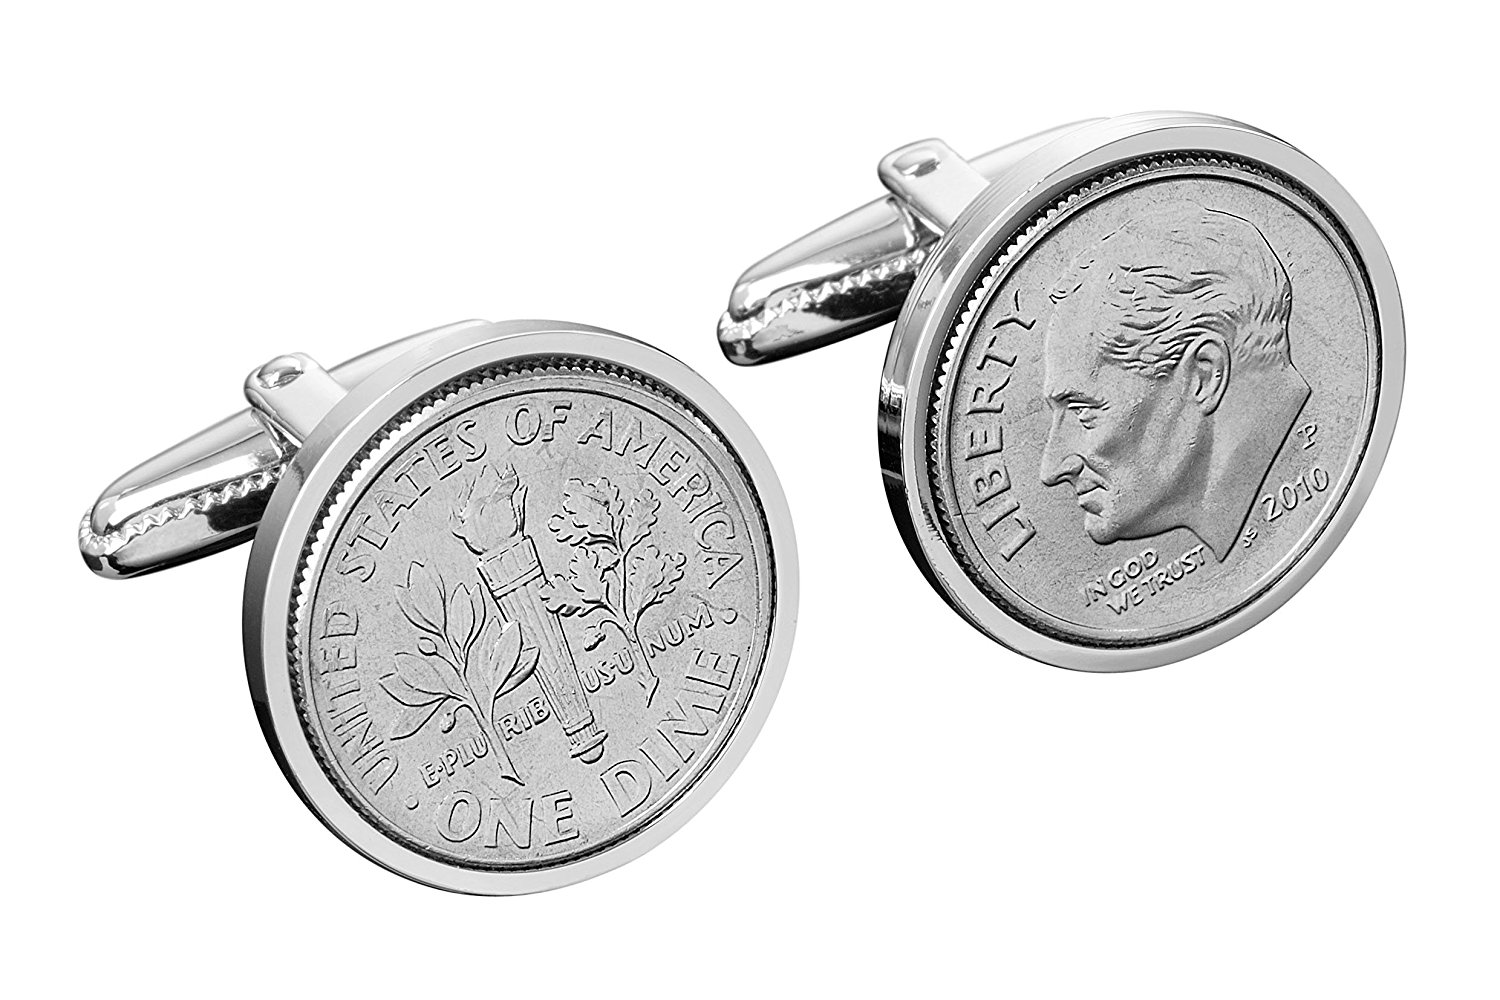 Men's Dime Cuff Links (Pair) US Mint Coins | Sterling Silver Designer Accessories | Small, Metal Rotating Clasps | Intricate Details